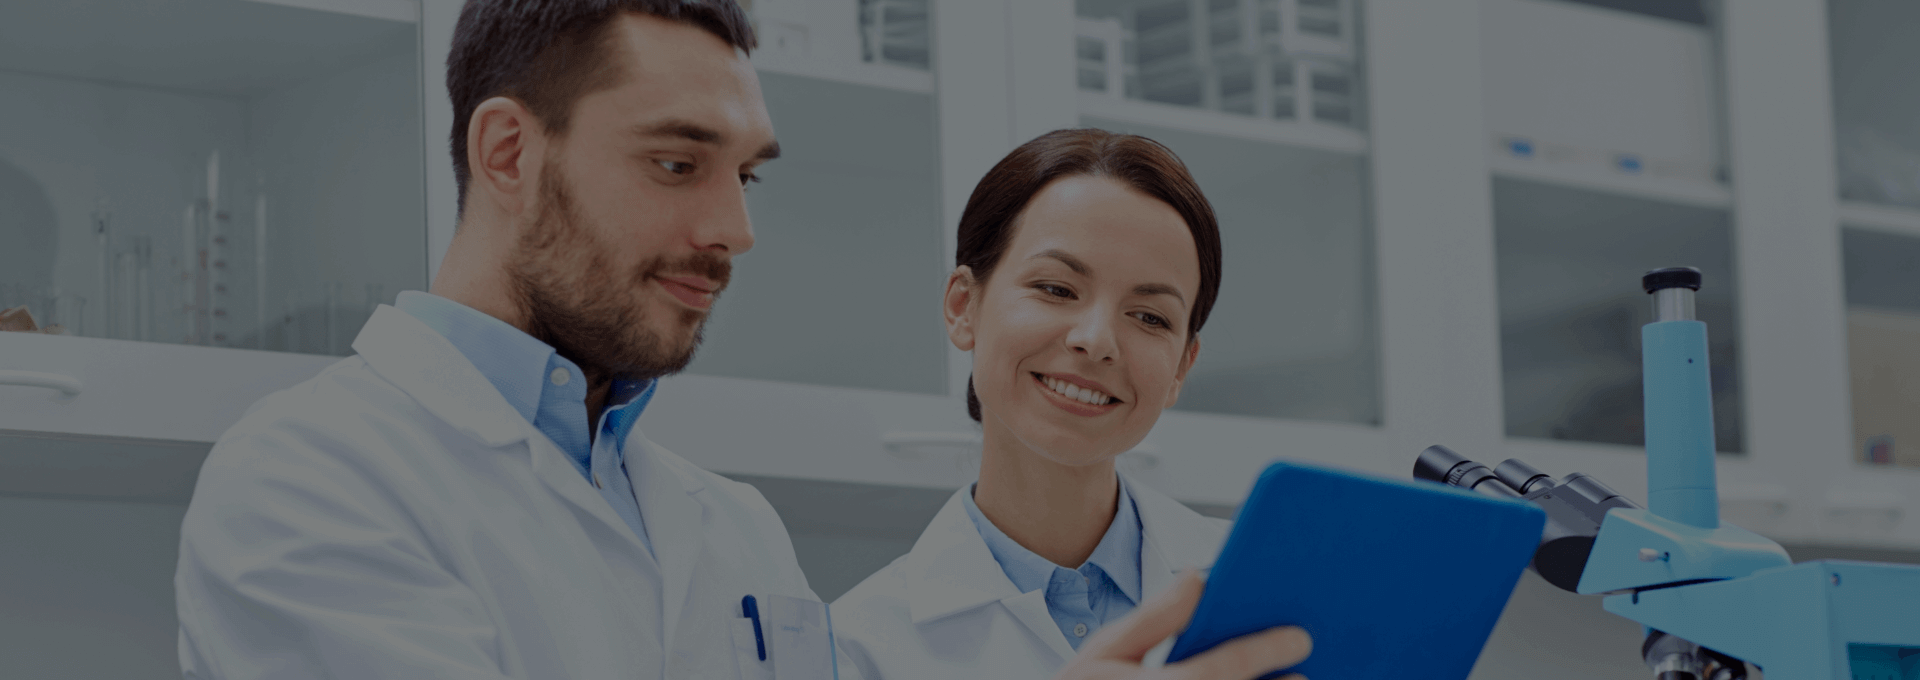 A Pharmaceutical Giant Improves Productivity by 50%